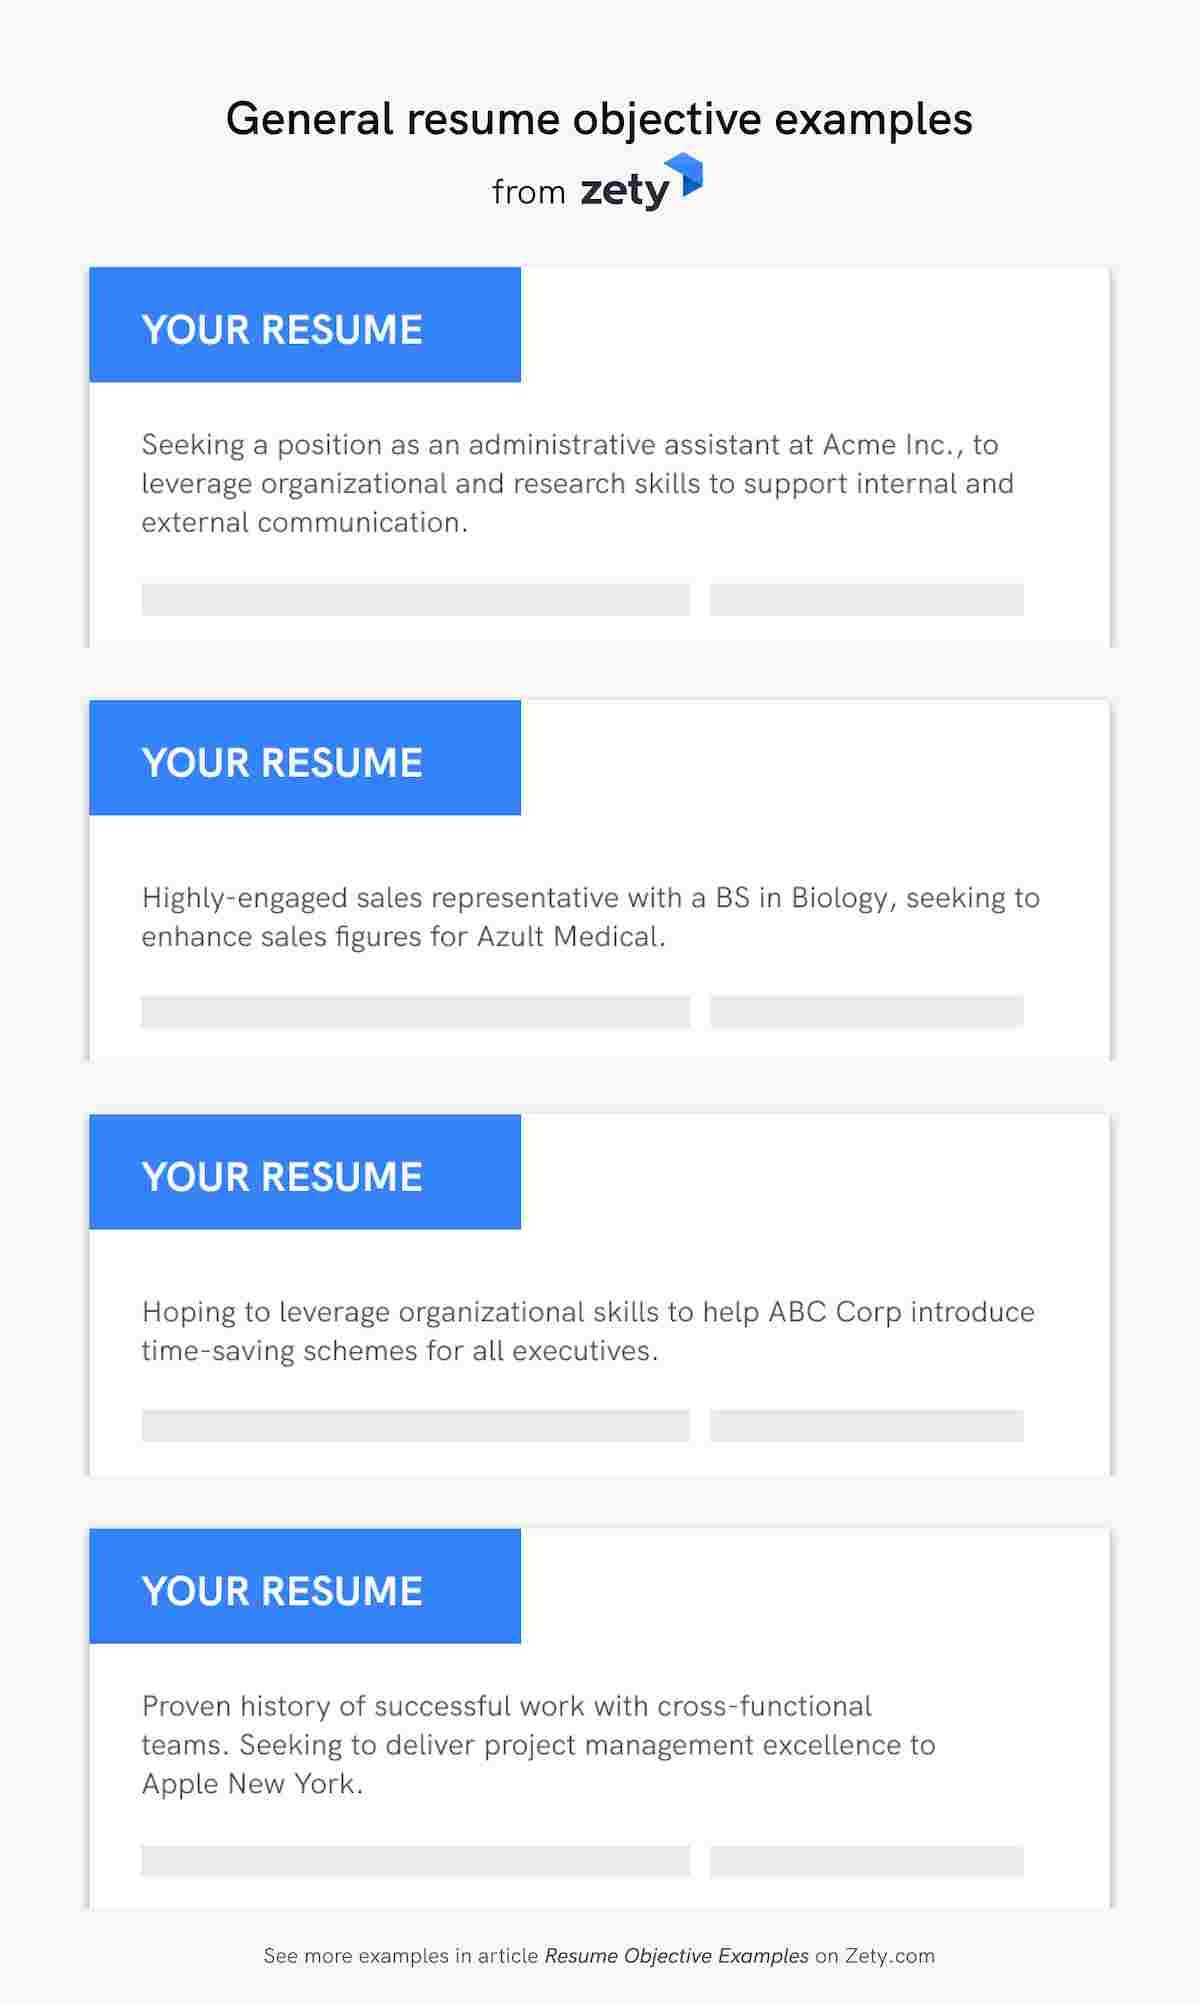 resume objective examples career objectives for all jobs general students donald trump Resume General Resume Objectives For Students